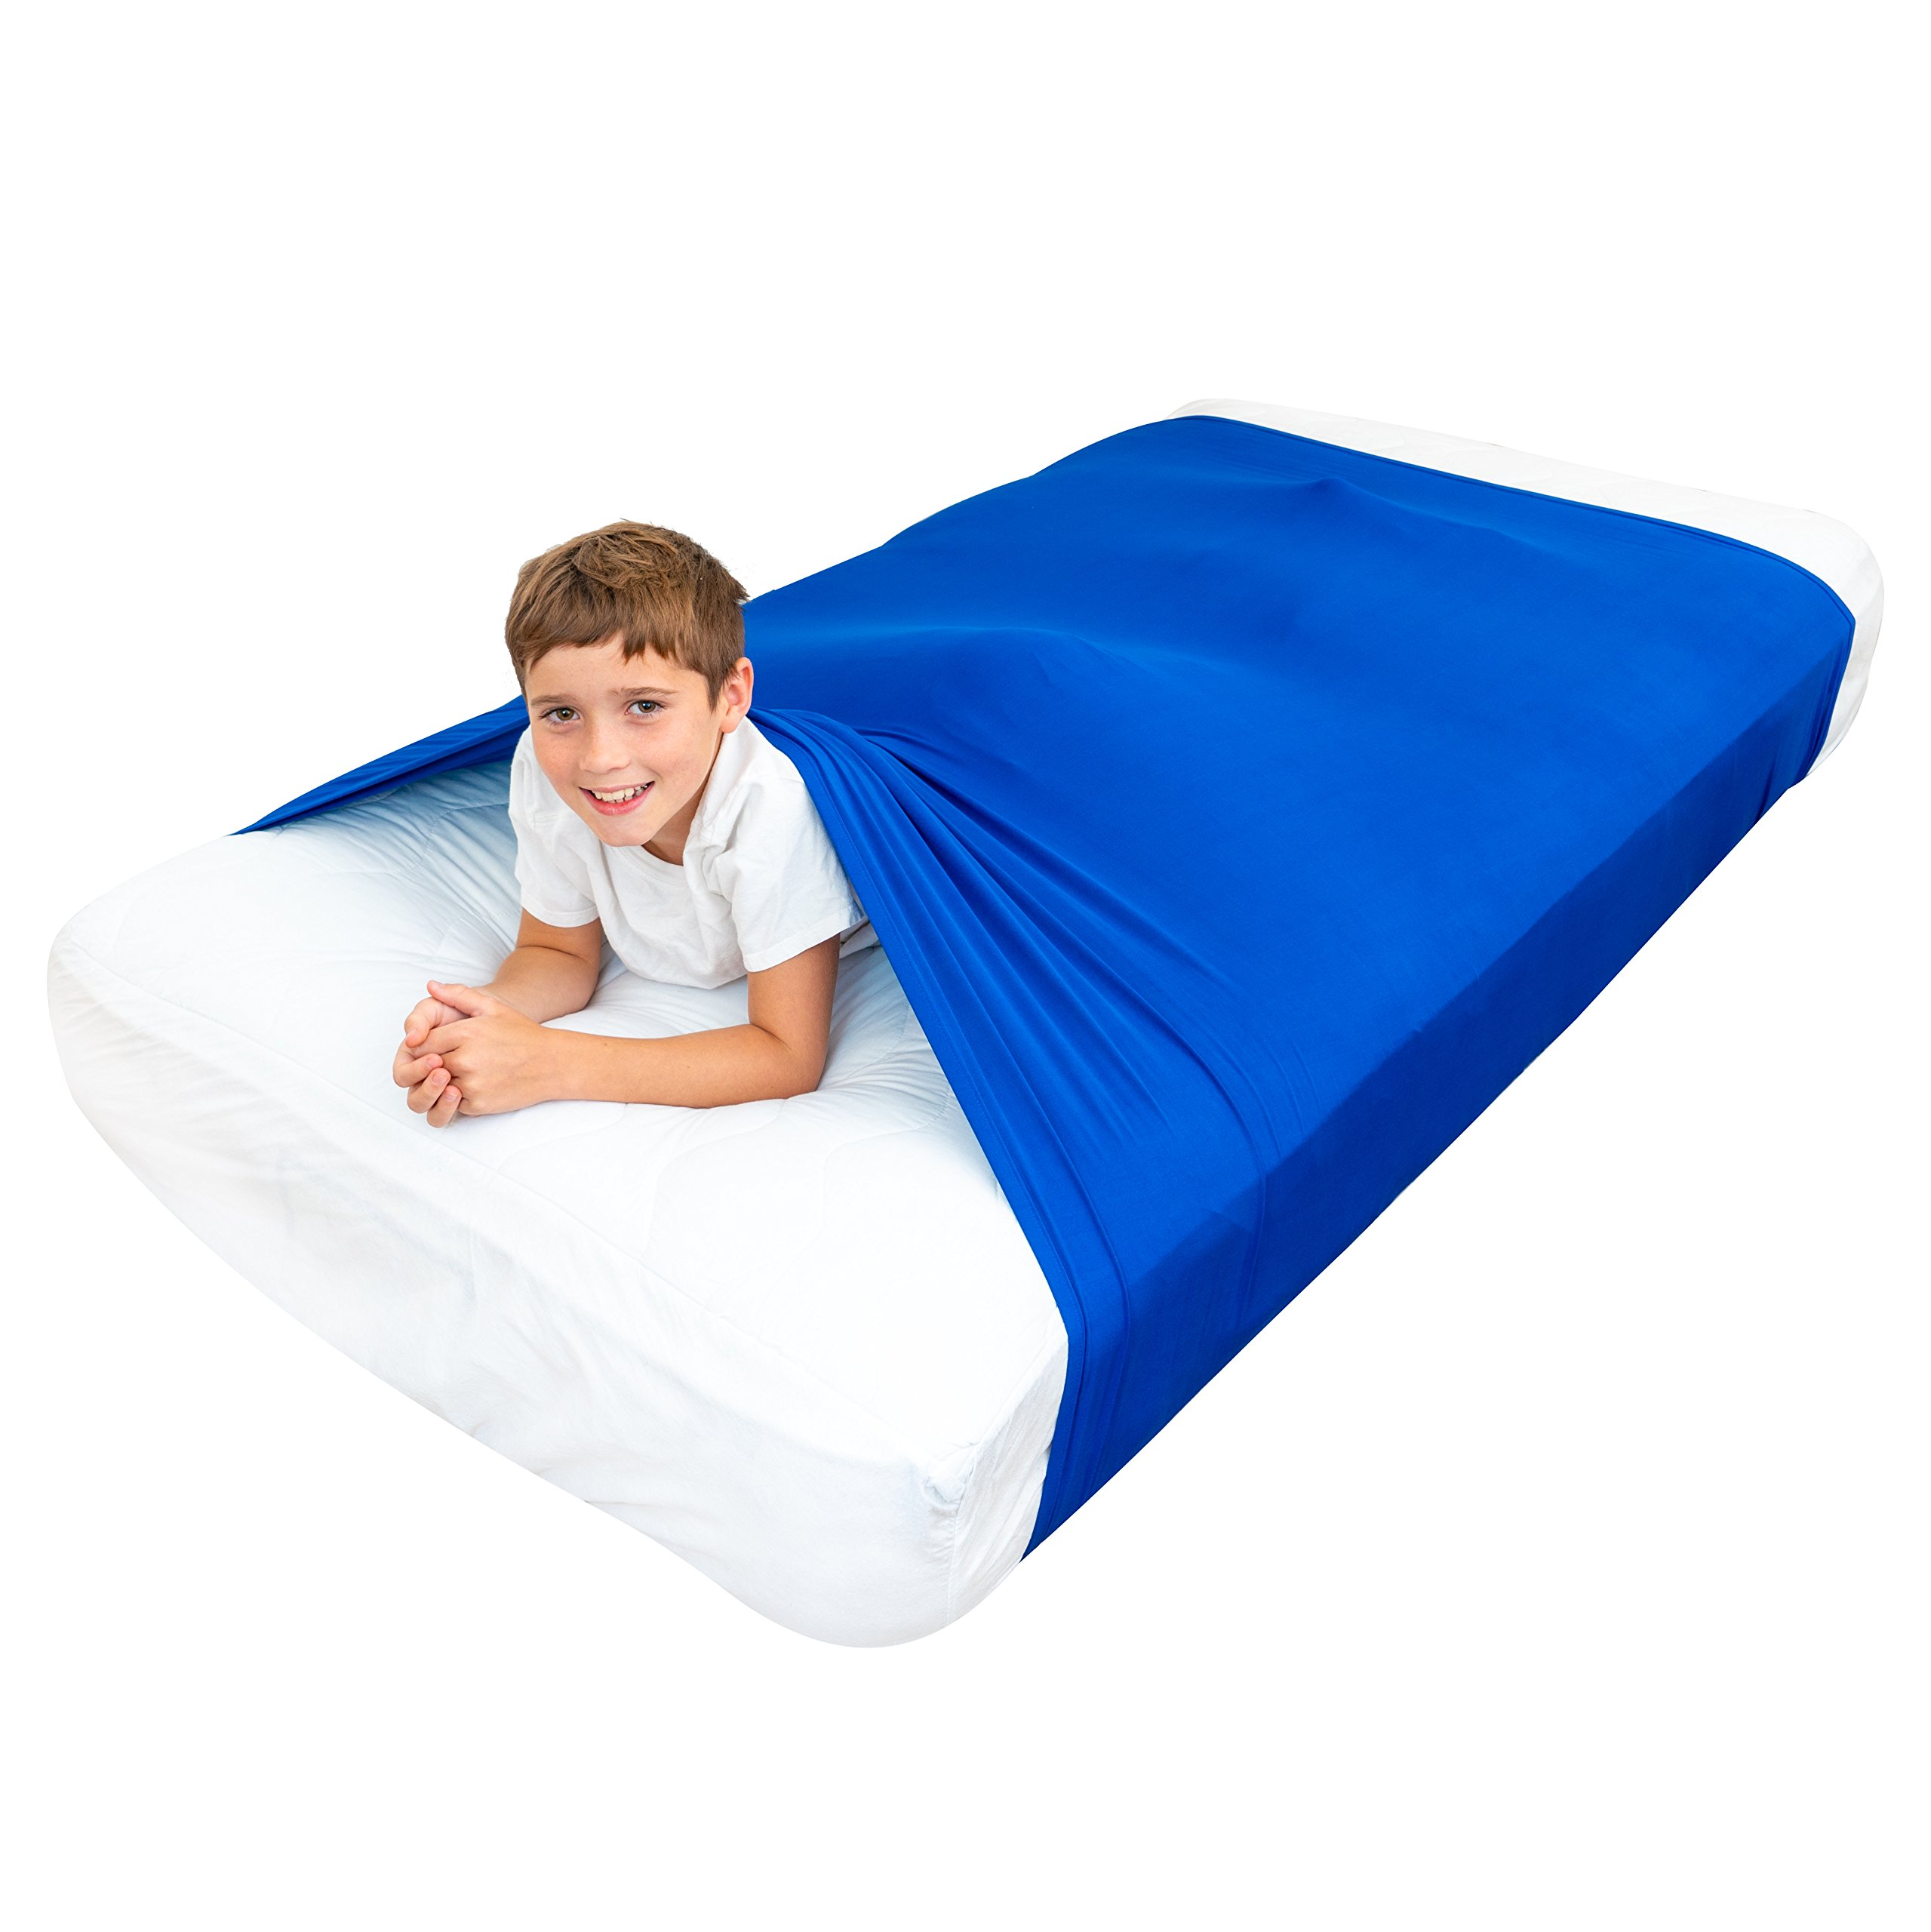 Special Supplies Sensory Bed Sheet for Kids Compression Alternative to Weighted Blankets - Breathable, Stretchy - Cool, Comfortable Sleeping Bedding (Blue, Twin) by Special Supplies